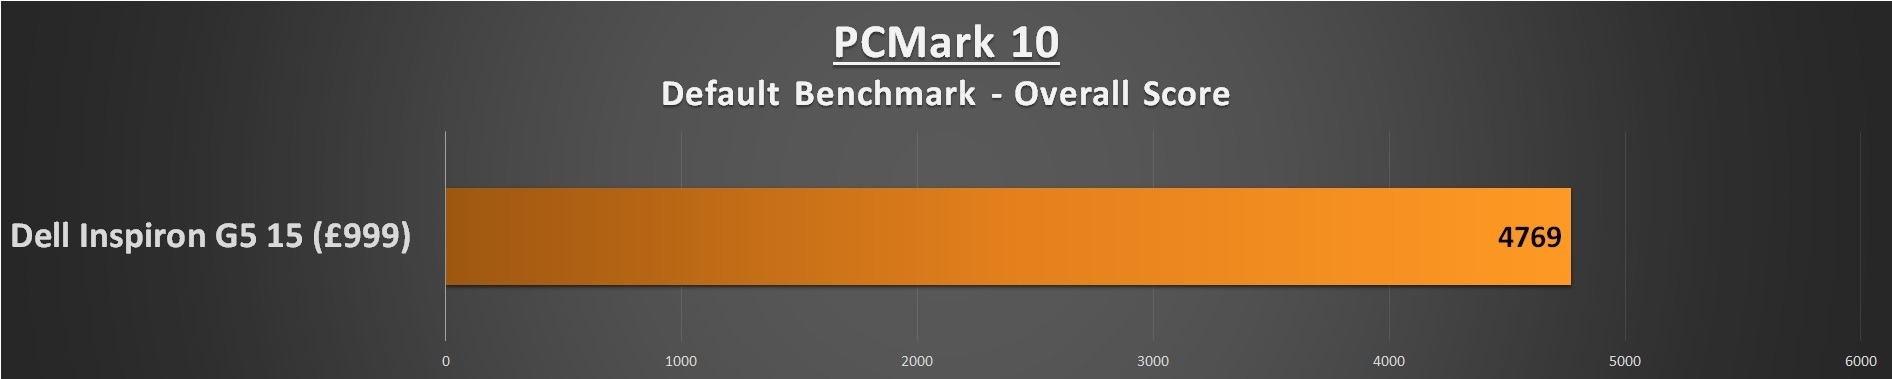 Dell Inspiron G5 15 Performance - PC Mark 10